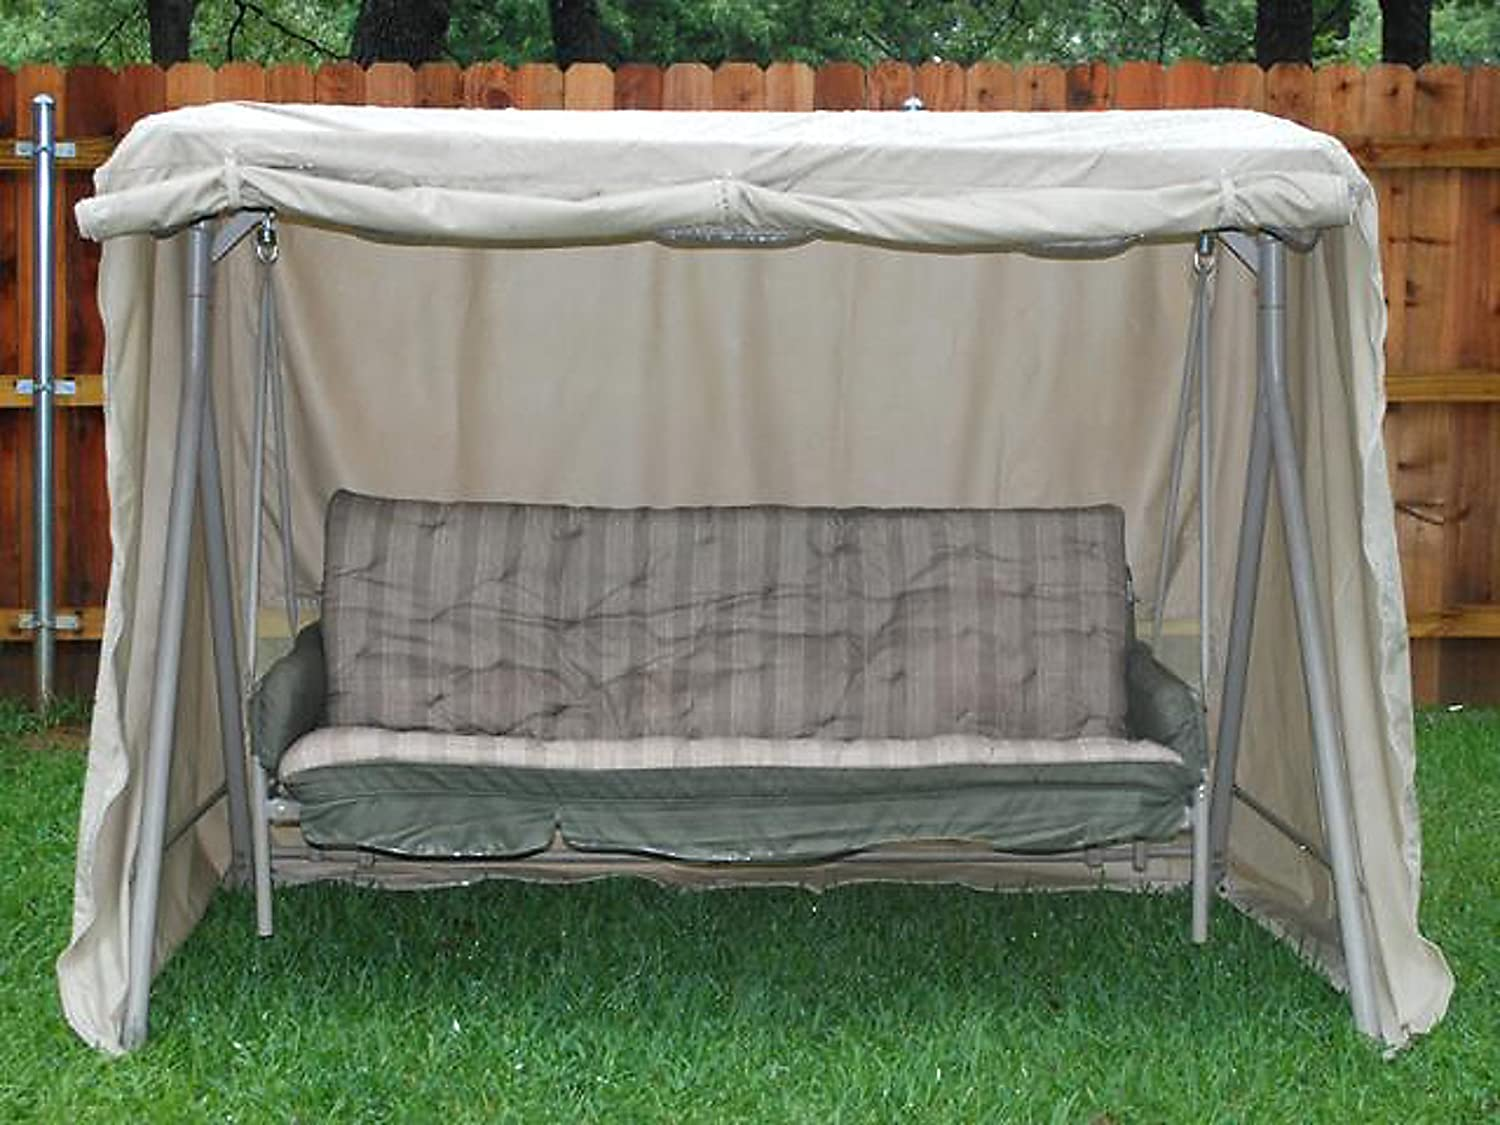 patio swing with canopy Amazon.: CoverMates   Canopy Swing Cover   86W x 50D x 70H  patio swing with canopy